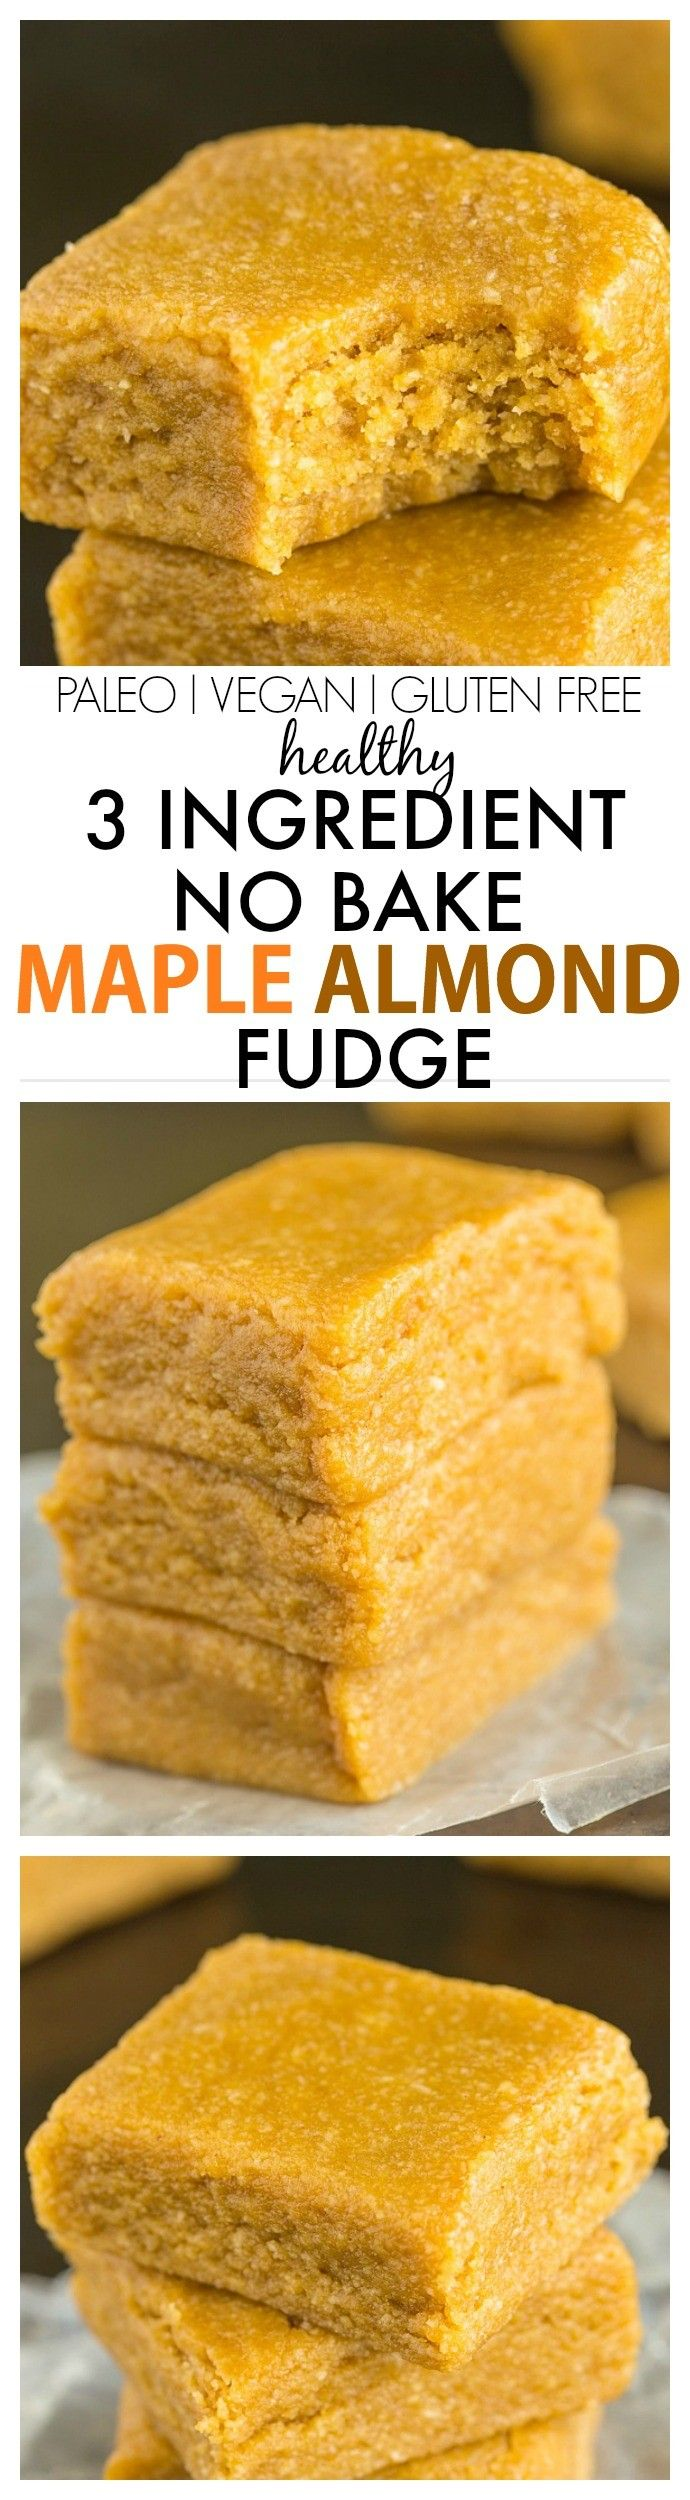 Healthy 3 Ingredient No Bake Maple Almond Fudge- A quick, easy and delicious recipe which melts in your mouth and has NO butter, oil, flour or sugar- It only takes FIVE minutes! {vegan, gluten free, paleo, refined sugar free}